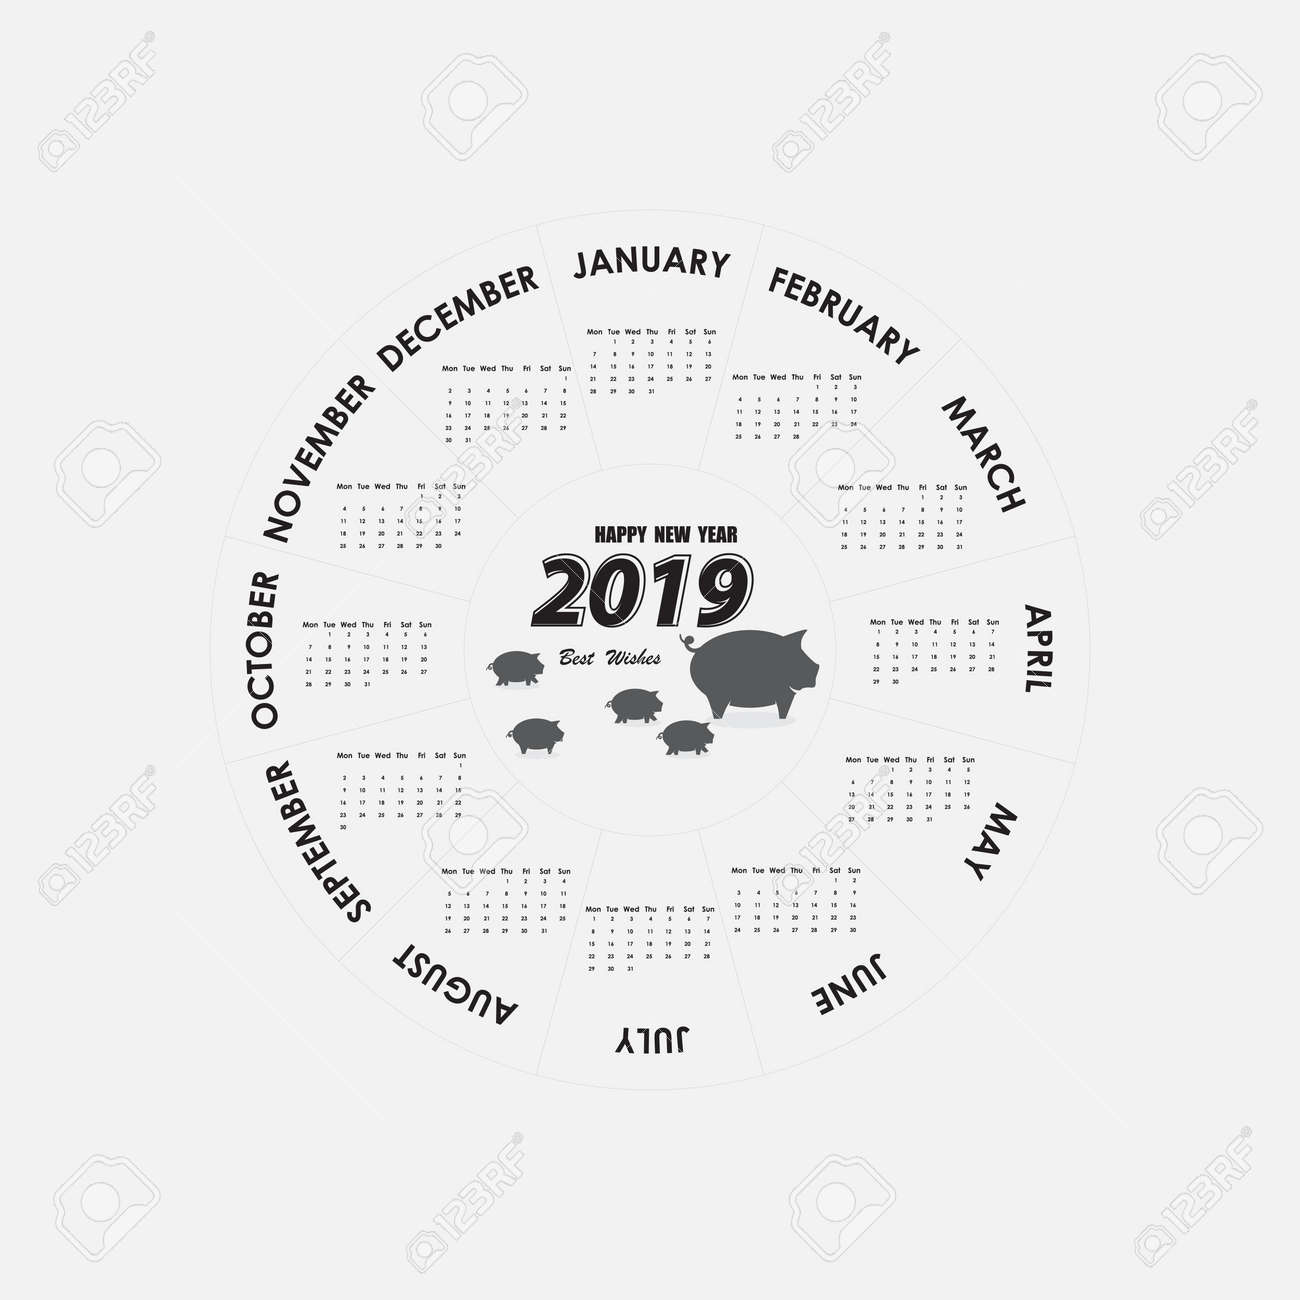 happy new year 2019 2019 calendar templatecircle calendar templatecalendar 2019 set of 12 monthsstarts